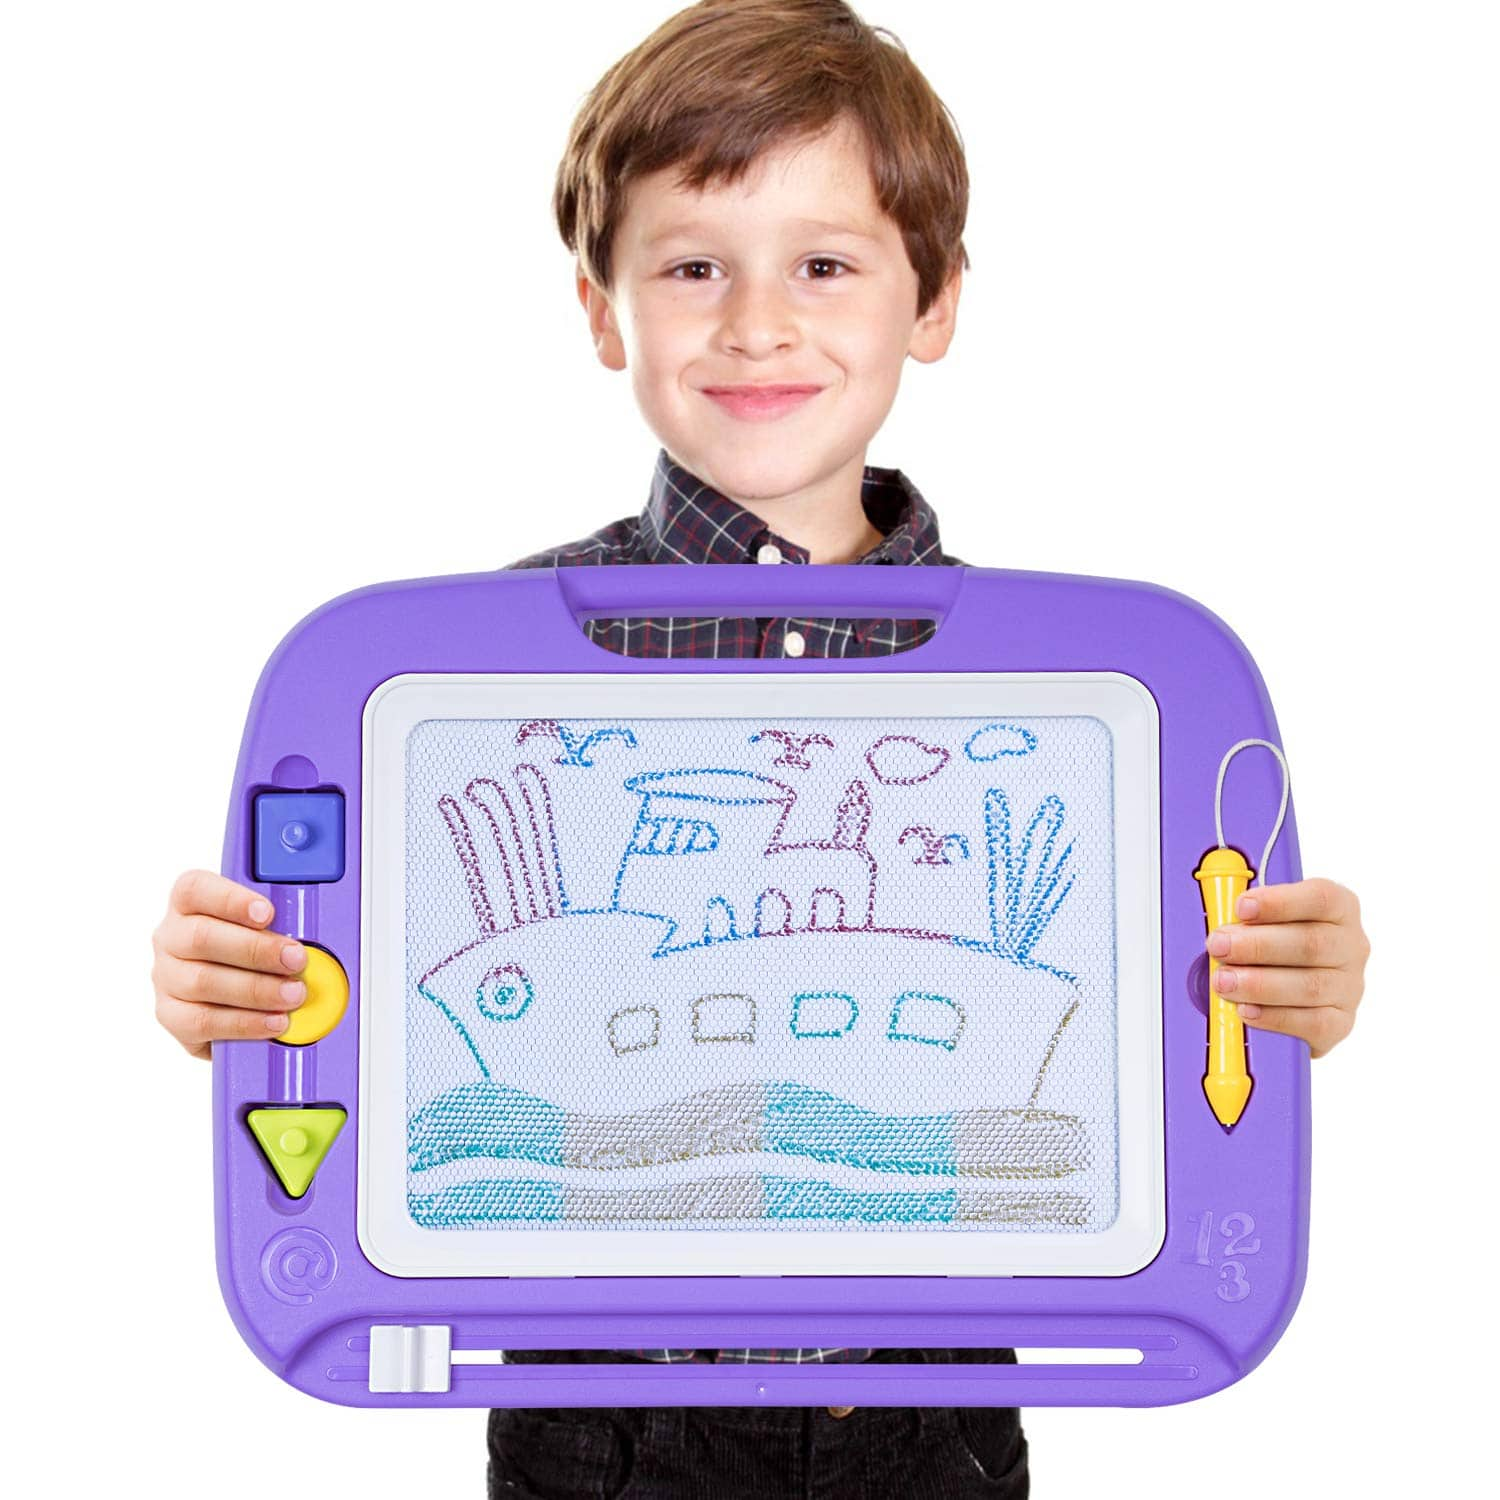 Magnetic Erasable Drawing Board Purple $13.64+Free Shipping